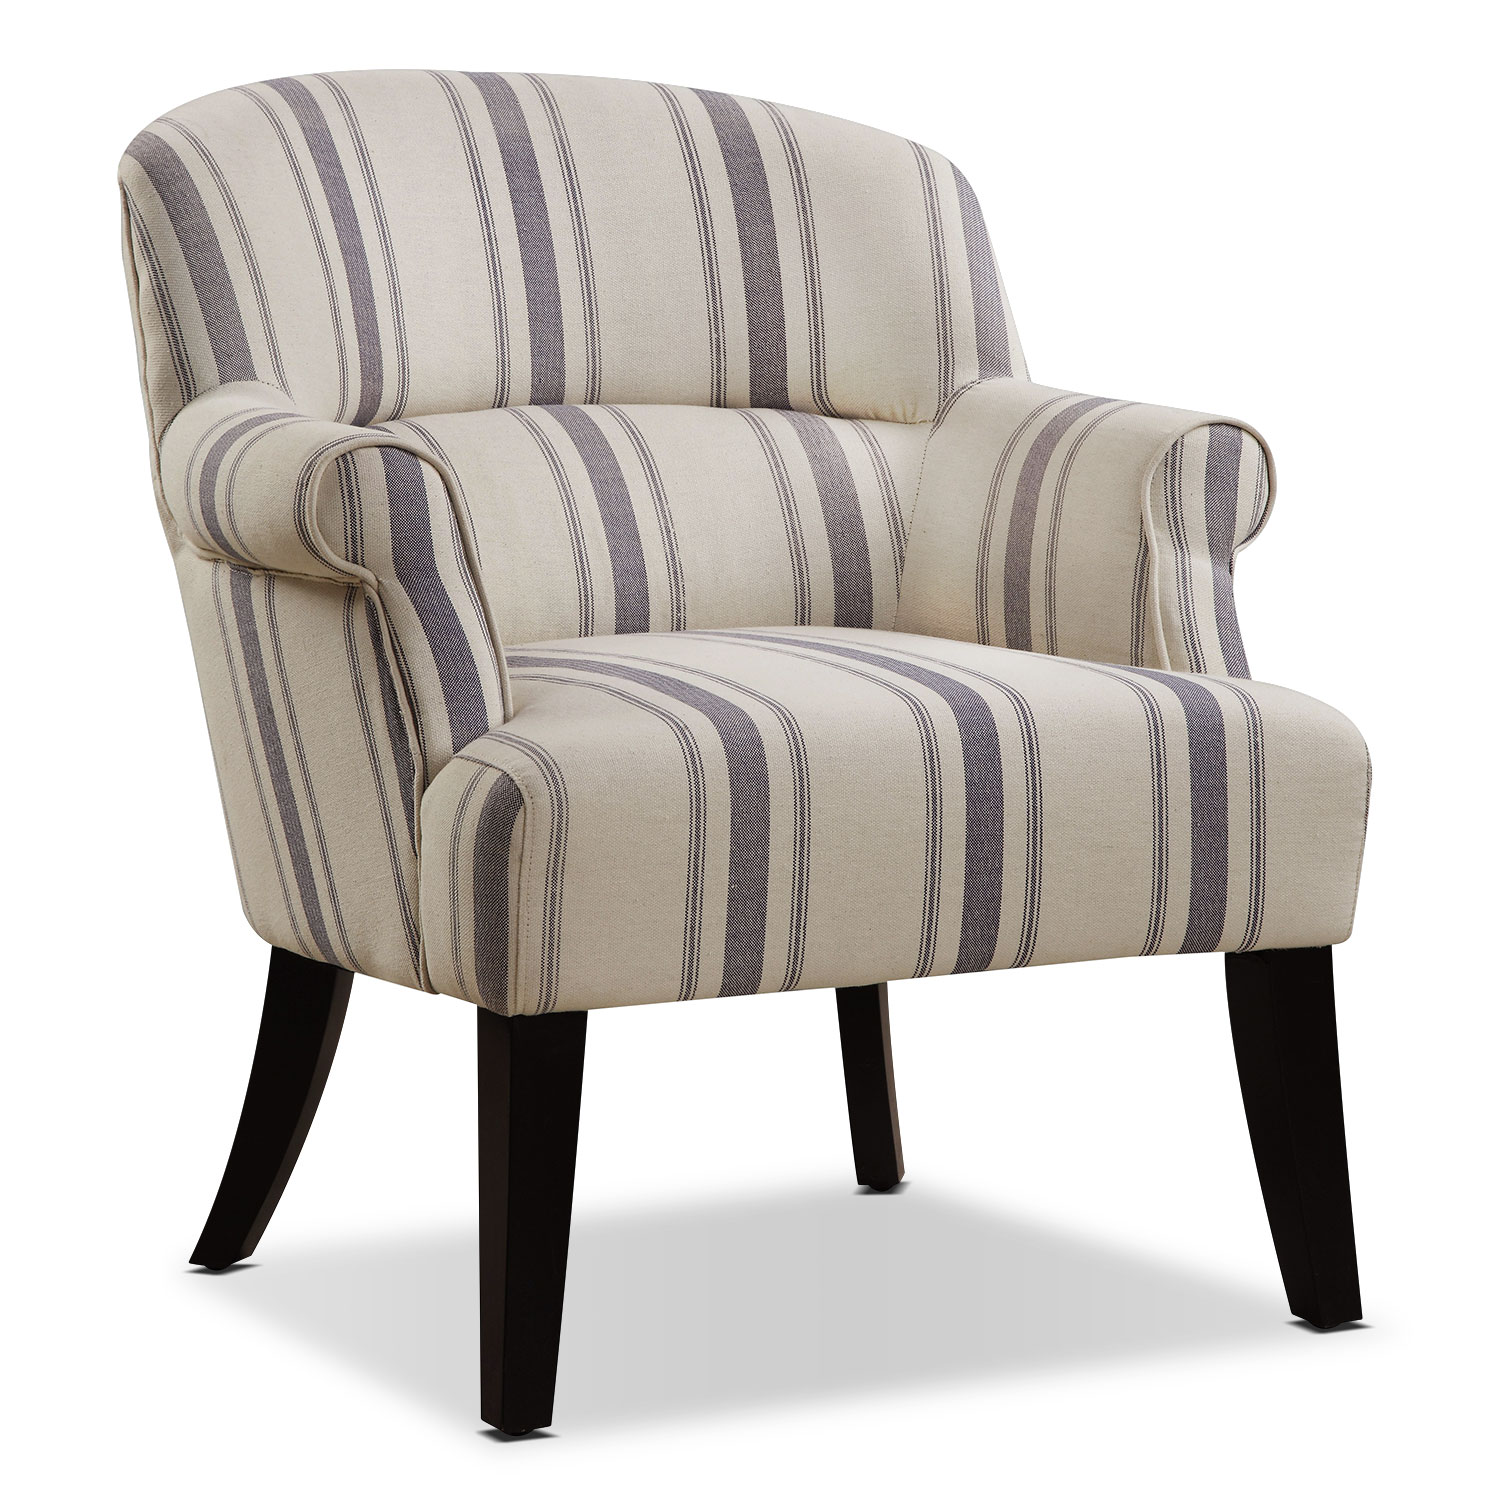 Accent and Occasional Furniture - Wynnwood Accent Chair - Beige